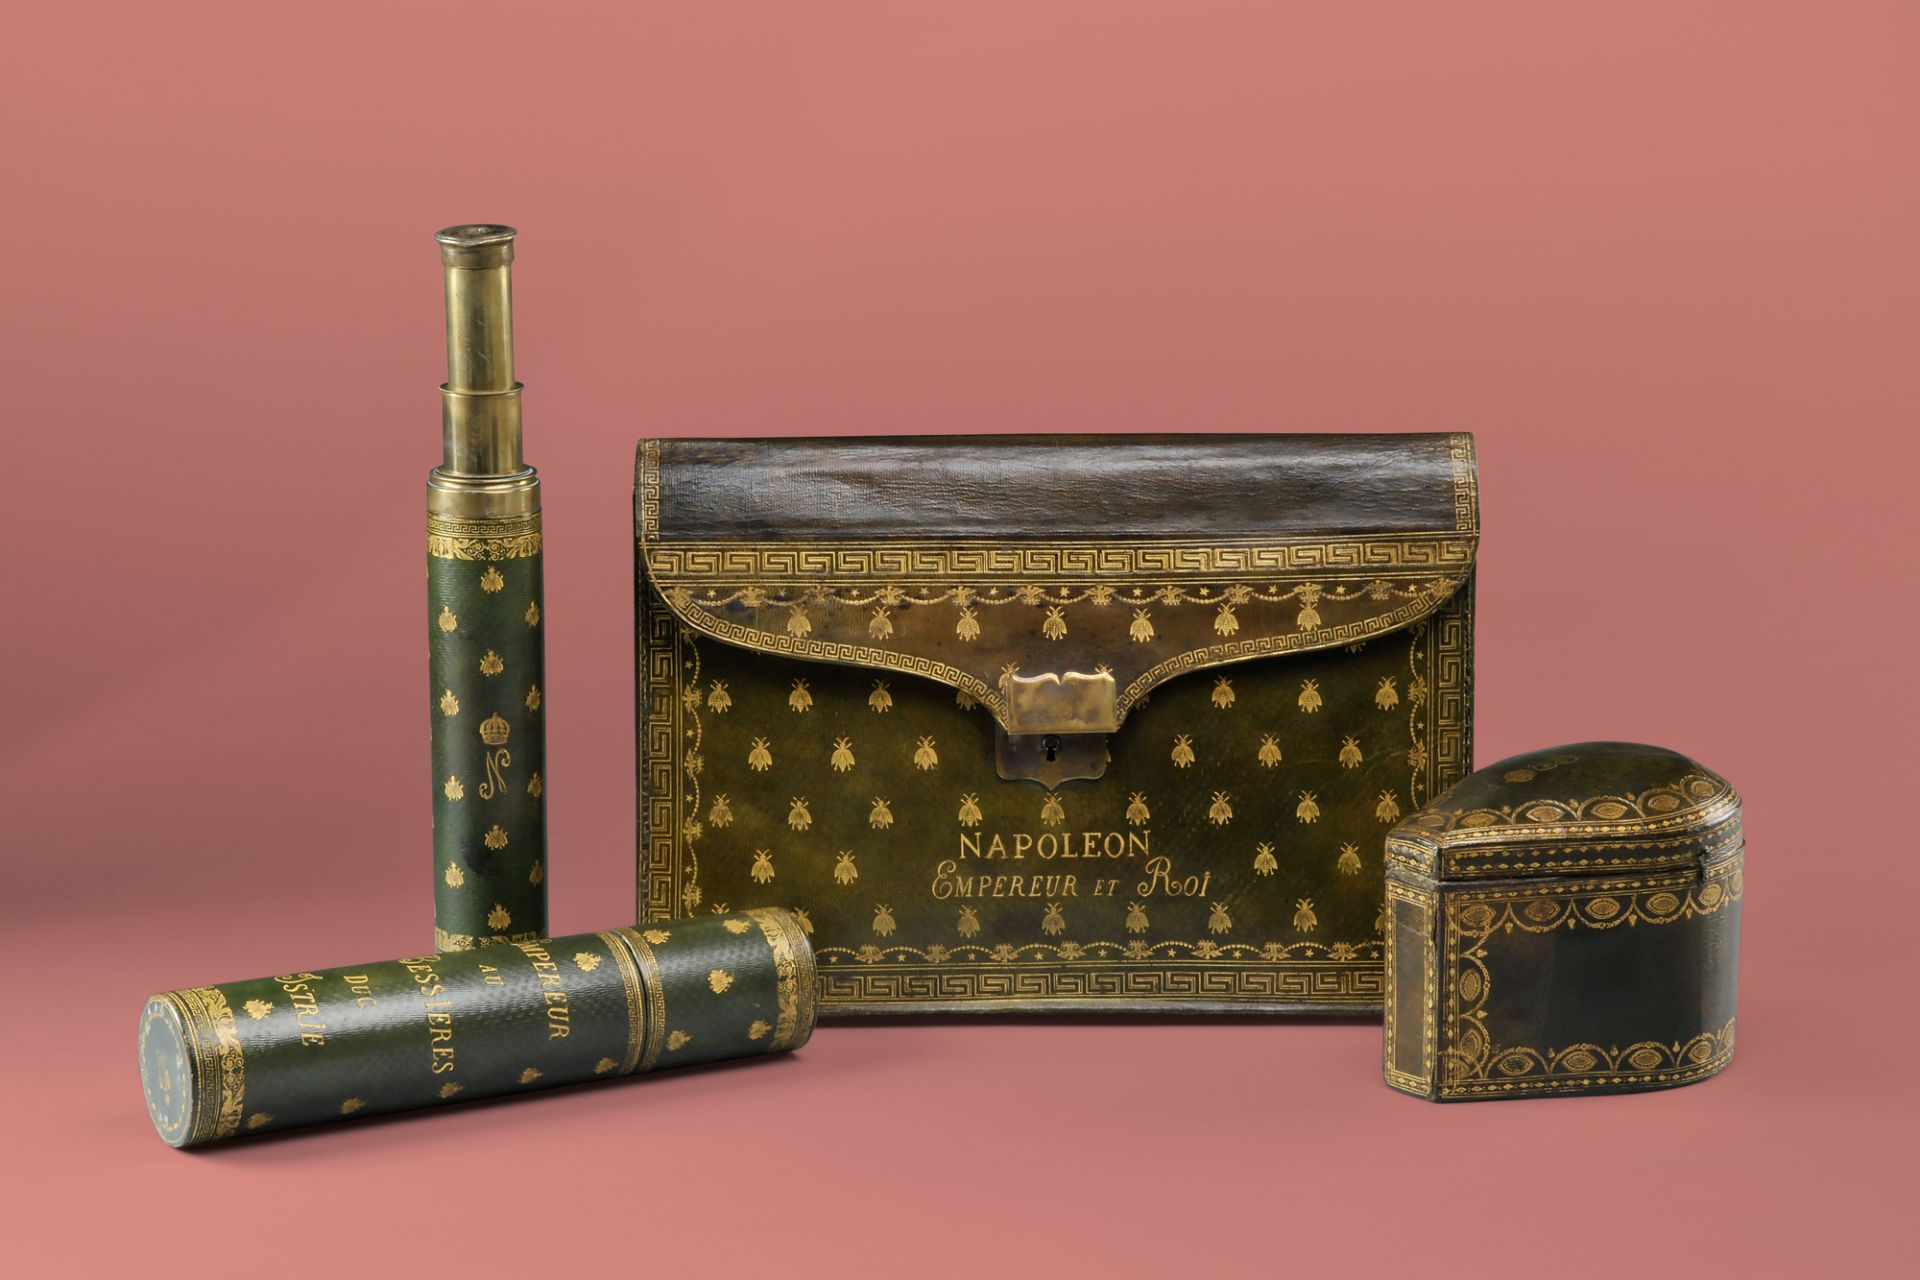 Briefcase and telescope with case for Napoleon I, France, approx. 1810 and Empress Joséphine's jewelry case, France, approx. 1805